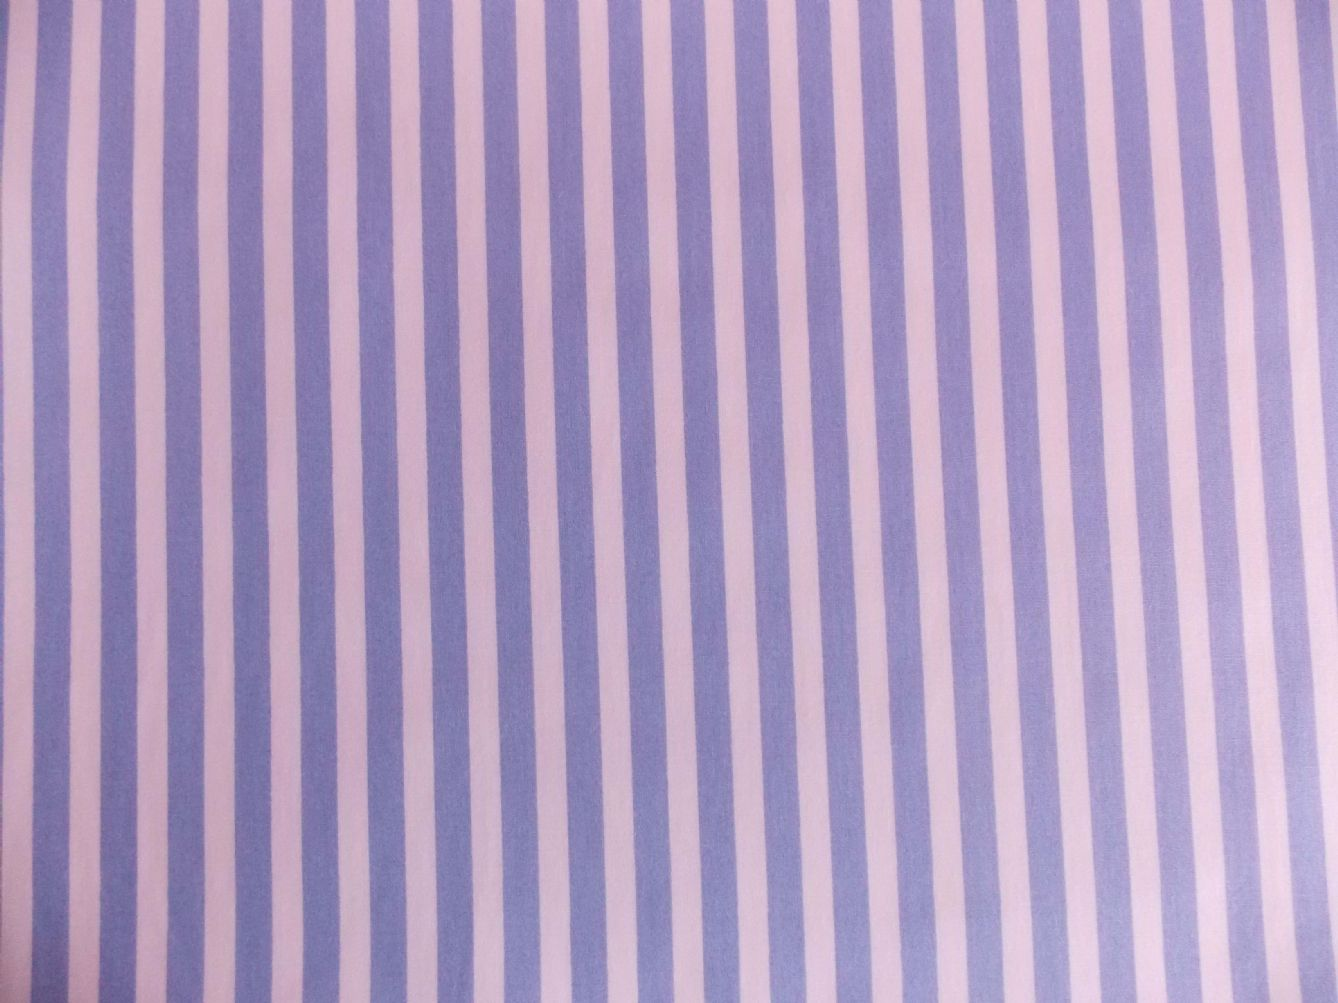 Stripe Blue Green And White: Light Blue With White Stripe 100% Cotton Fabric